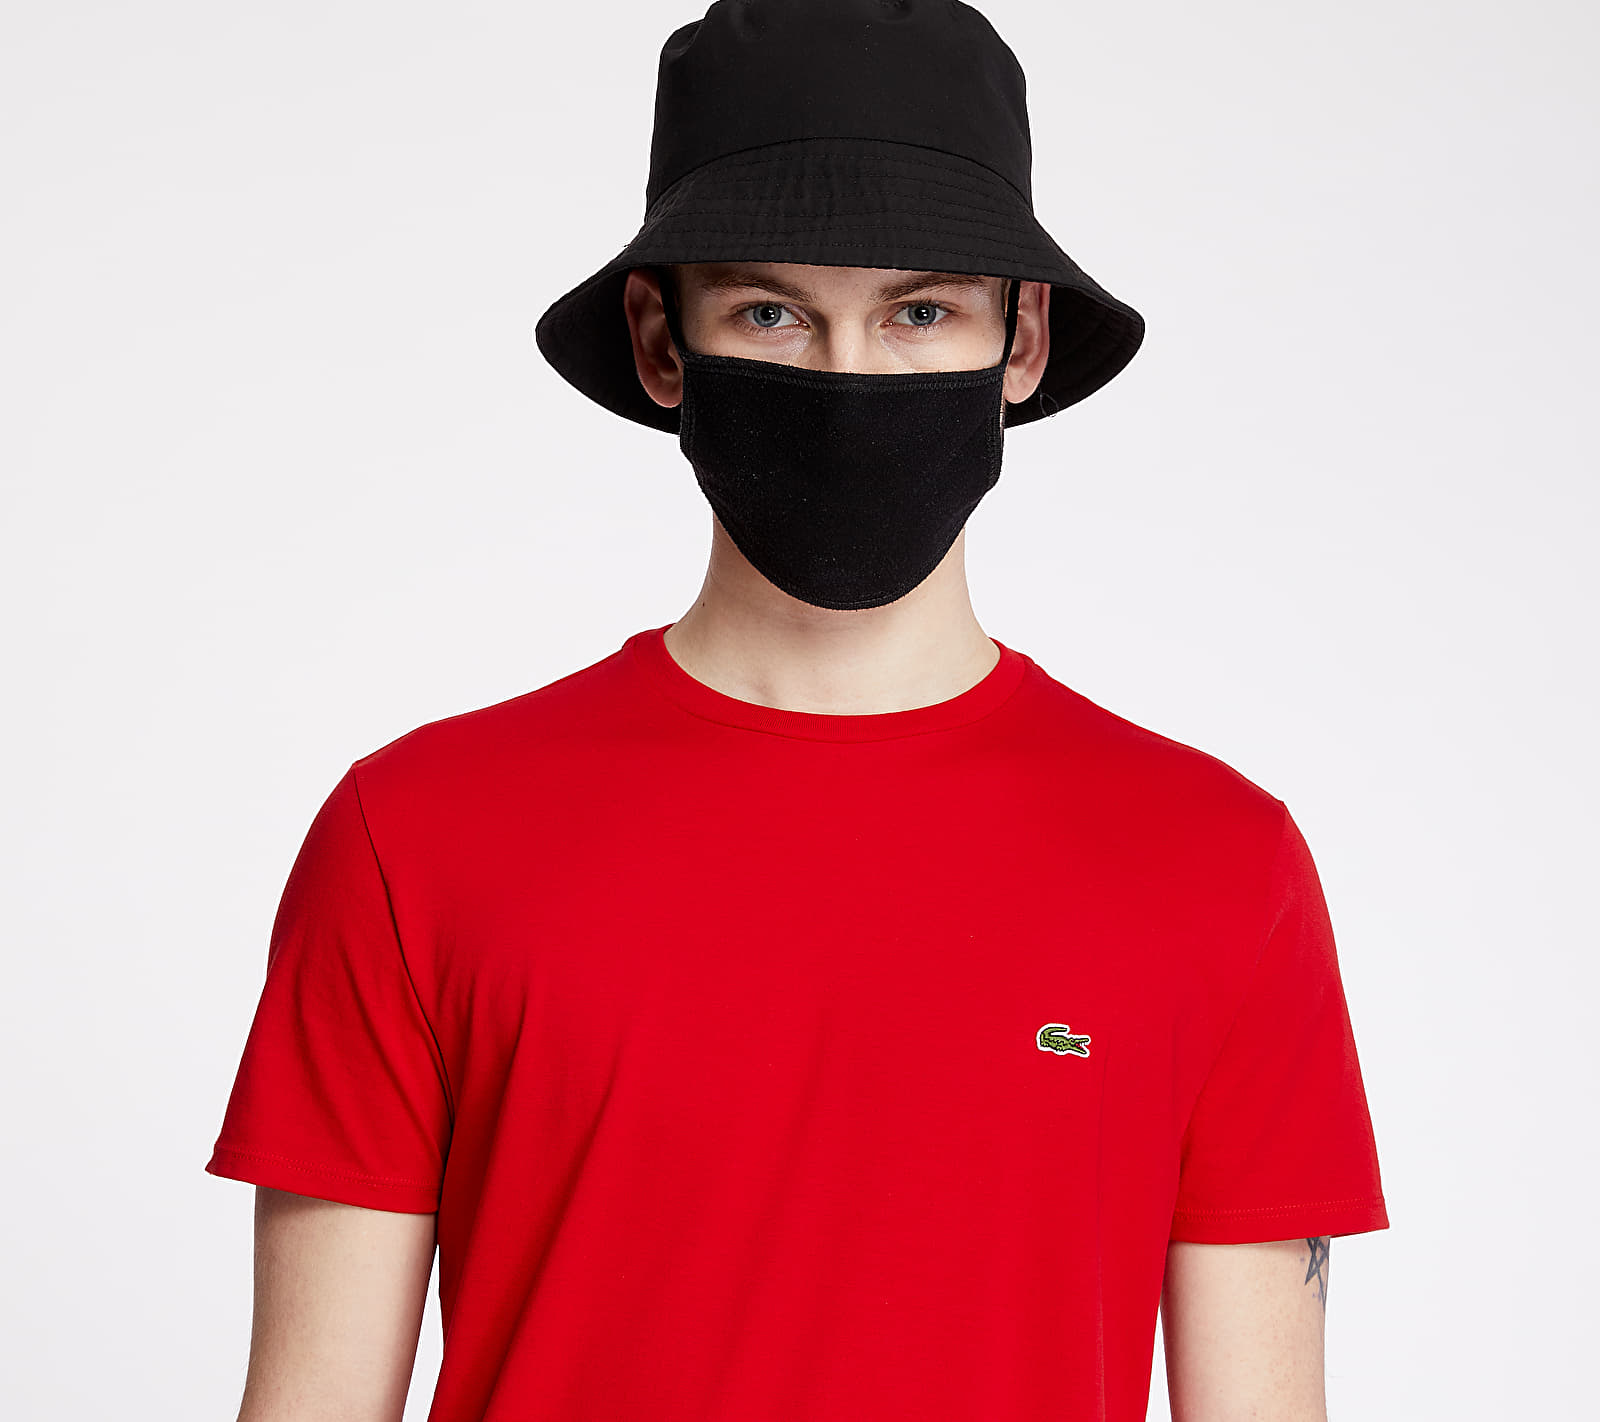 LACOSTE Classic Fit Tee Rouge, Red